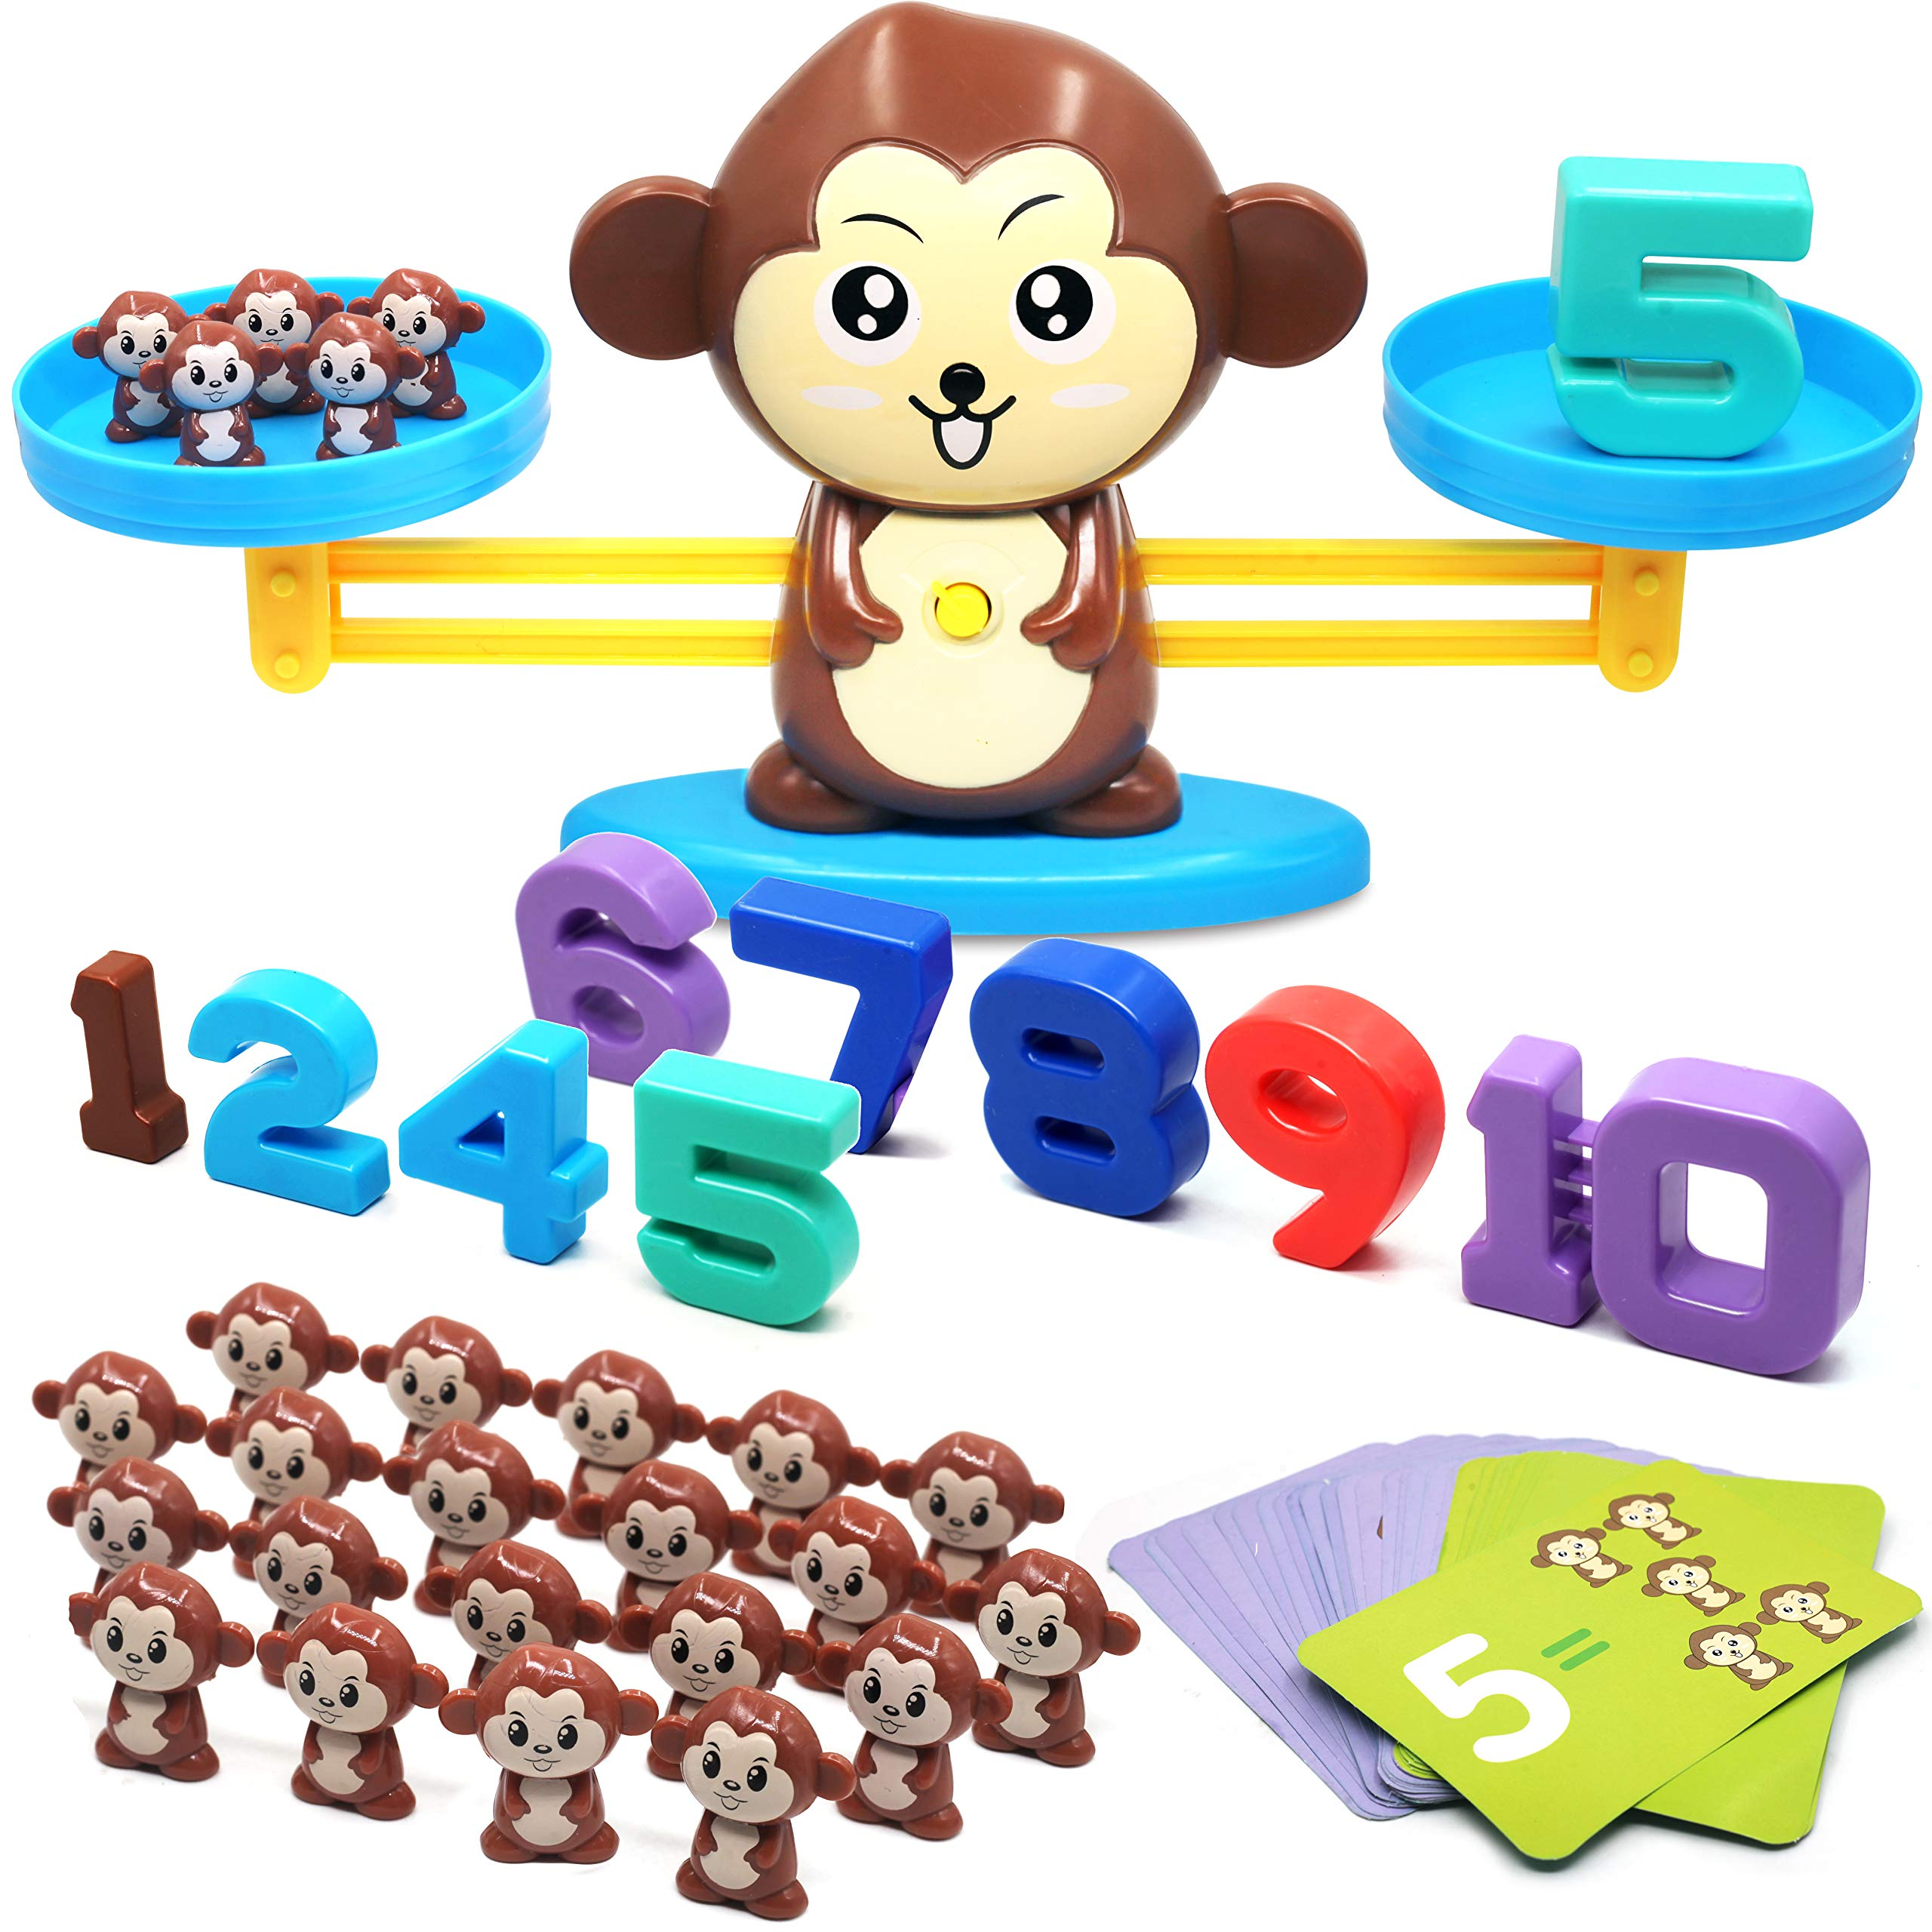 Balance Math Game Counting Toy - Monkey Balance Cool Math Game for Girls & Boys | Fun, Educational Children's Gift & Kids Toy STEM Learning Ages 3+ by For Ideahome